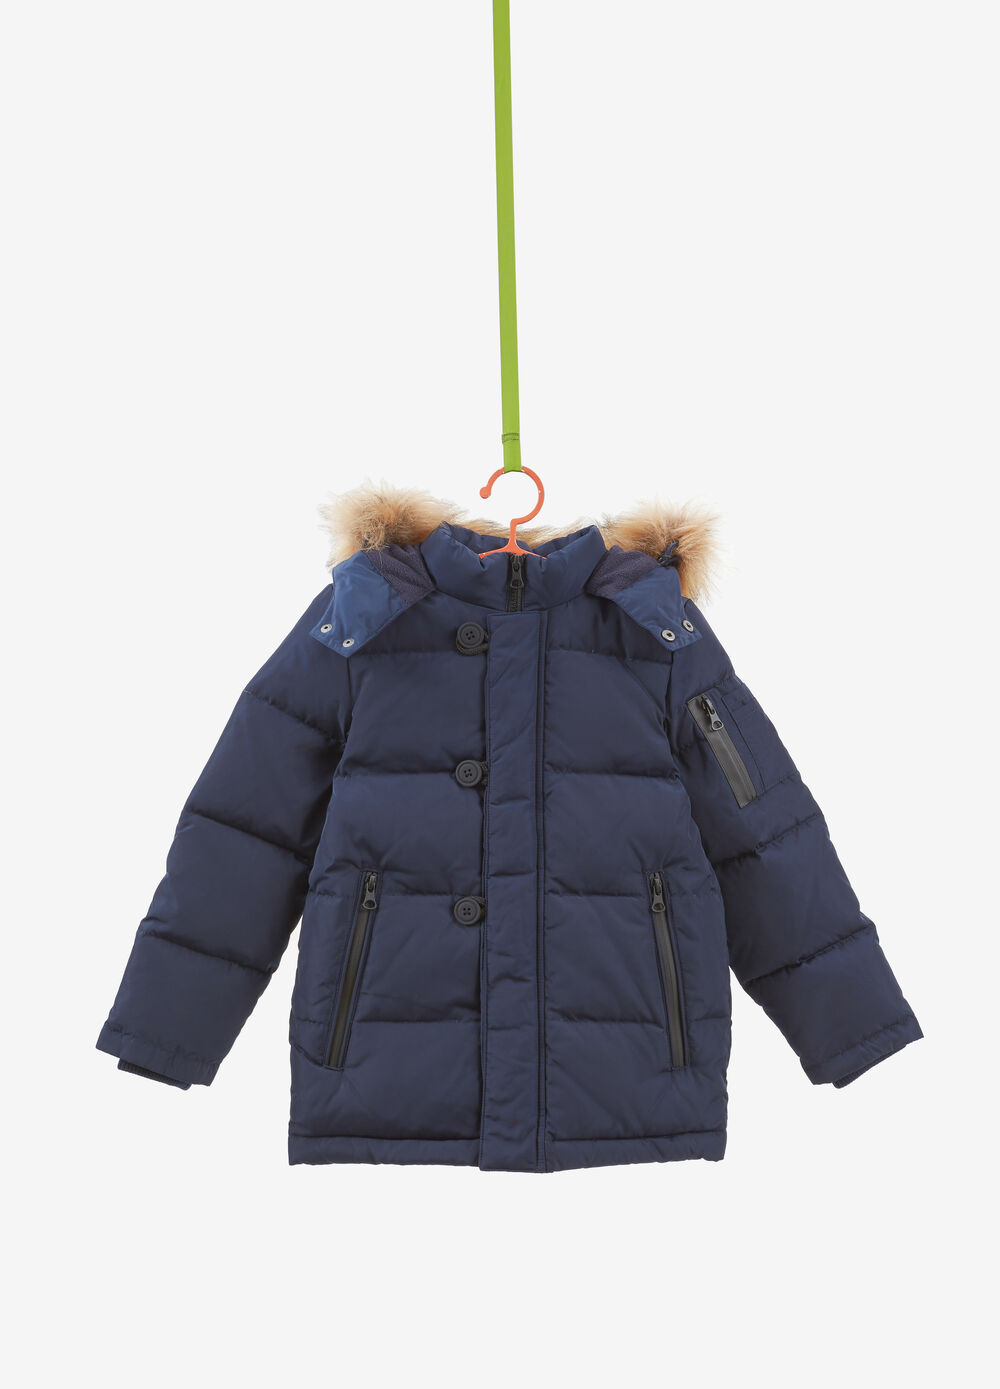 Very heavy down jacket with faux fur